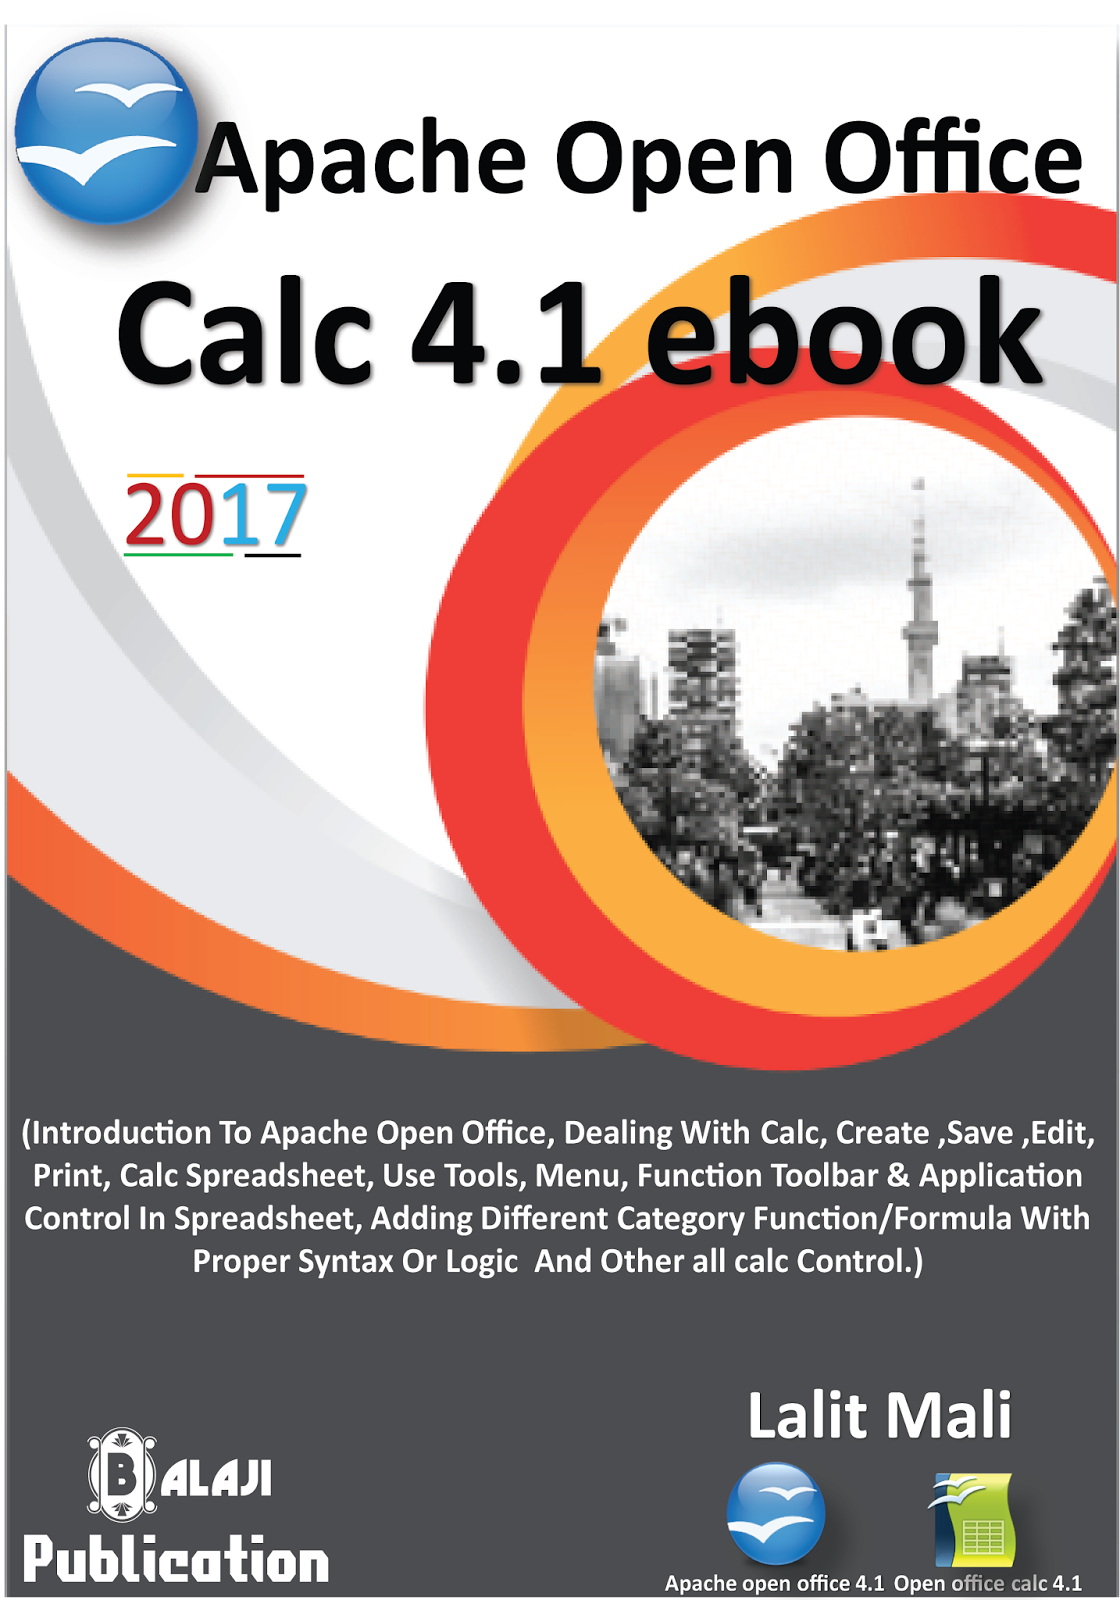 Apache Open Office Calc 4 1 Ebook Introduction To Open